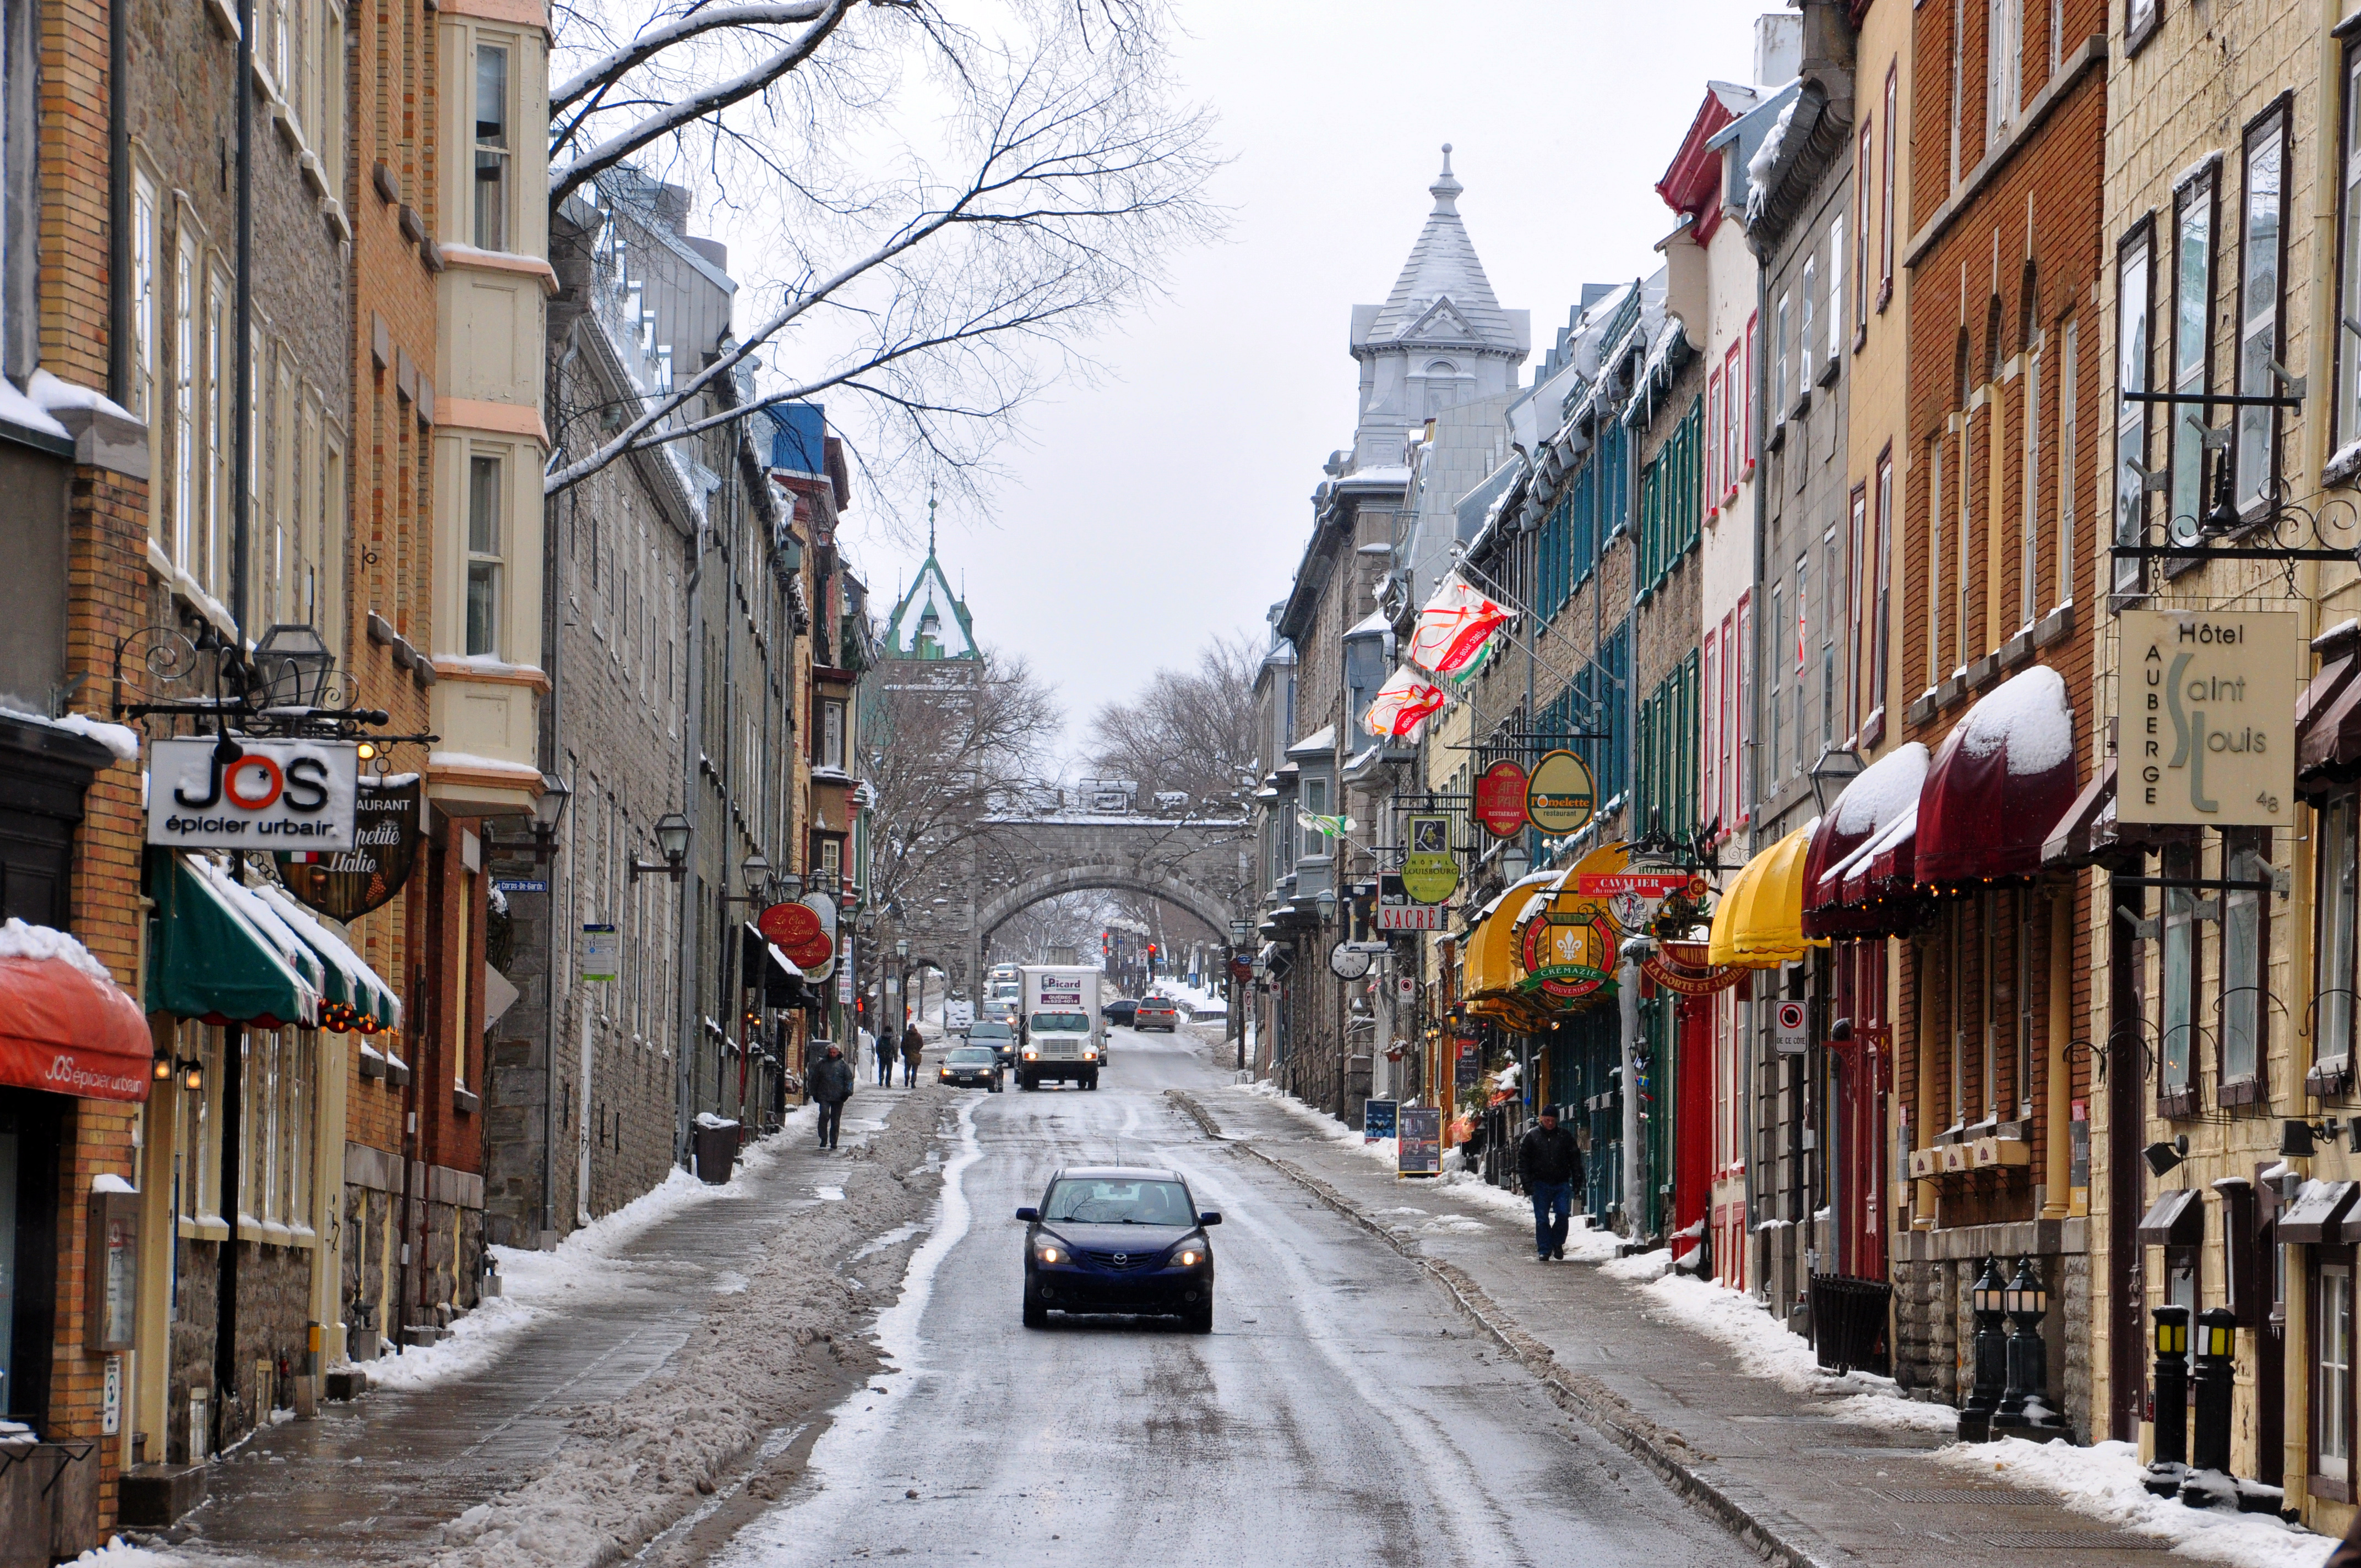 Quebec_City_Rue_St-Louis_2010b